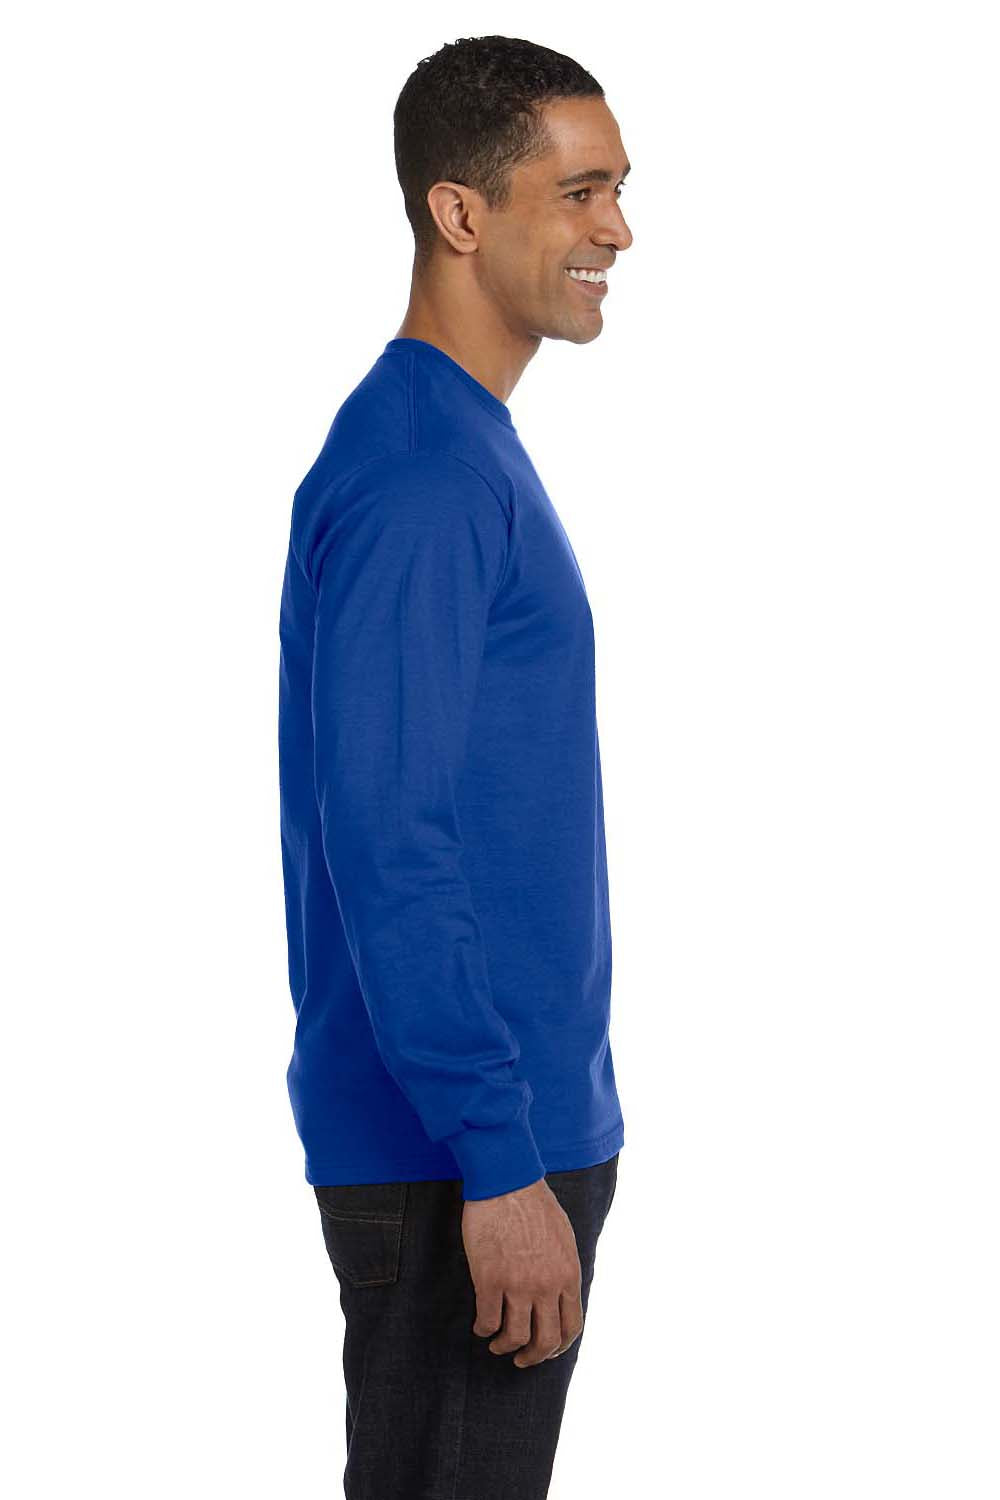 Hanes 5286 Mens ComfortSoft Long Sleeve Crewneck T-Shirt Royal Blue Side